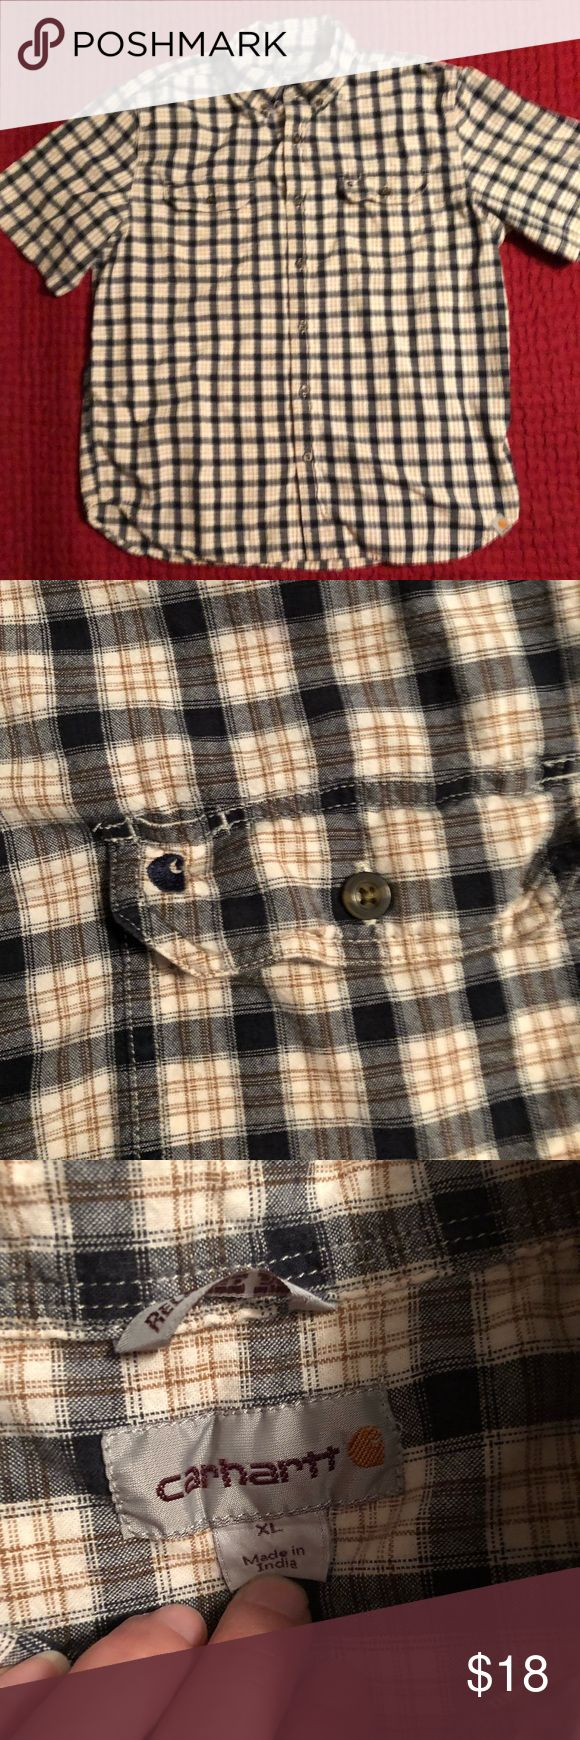 Men's Carhartt Short Sleeve Button Down XL Gently worn with no holes, rips, or stains. 100% Cotton. Color are black, brown, and cream. Carhartt Shirts Casual Button Down Shirts